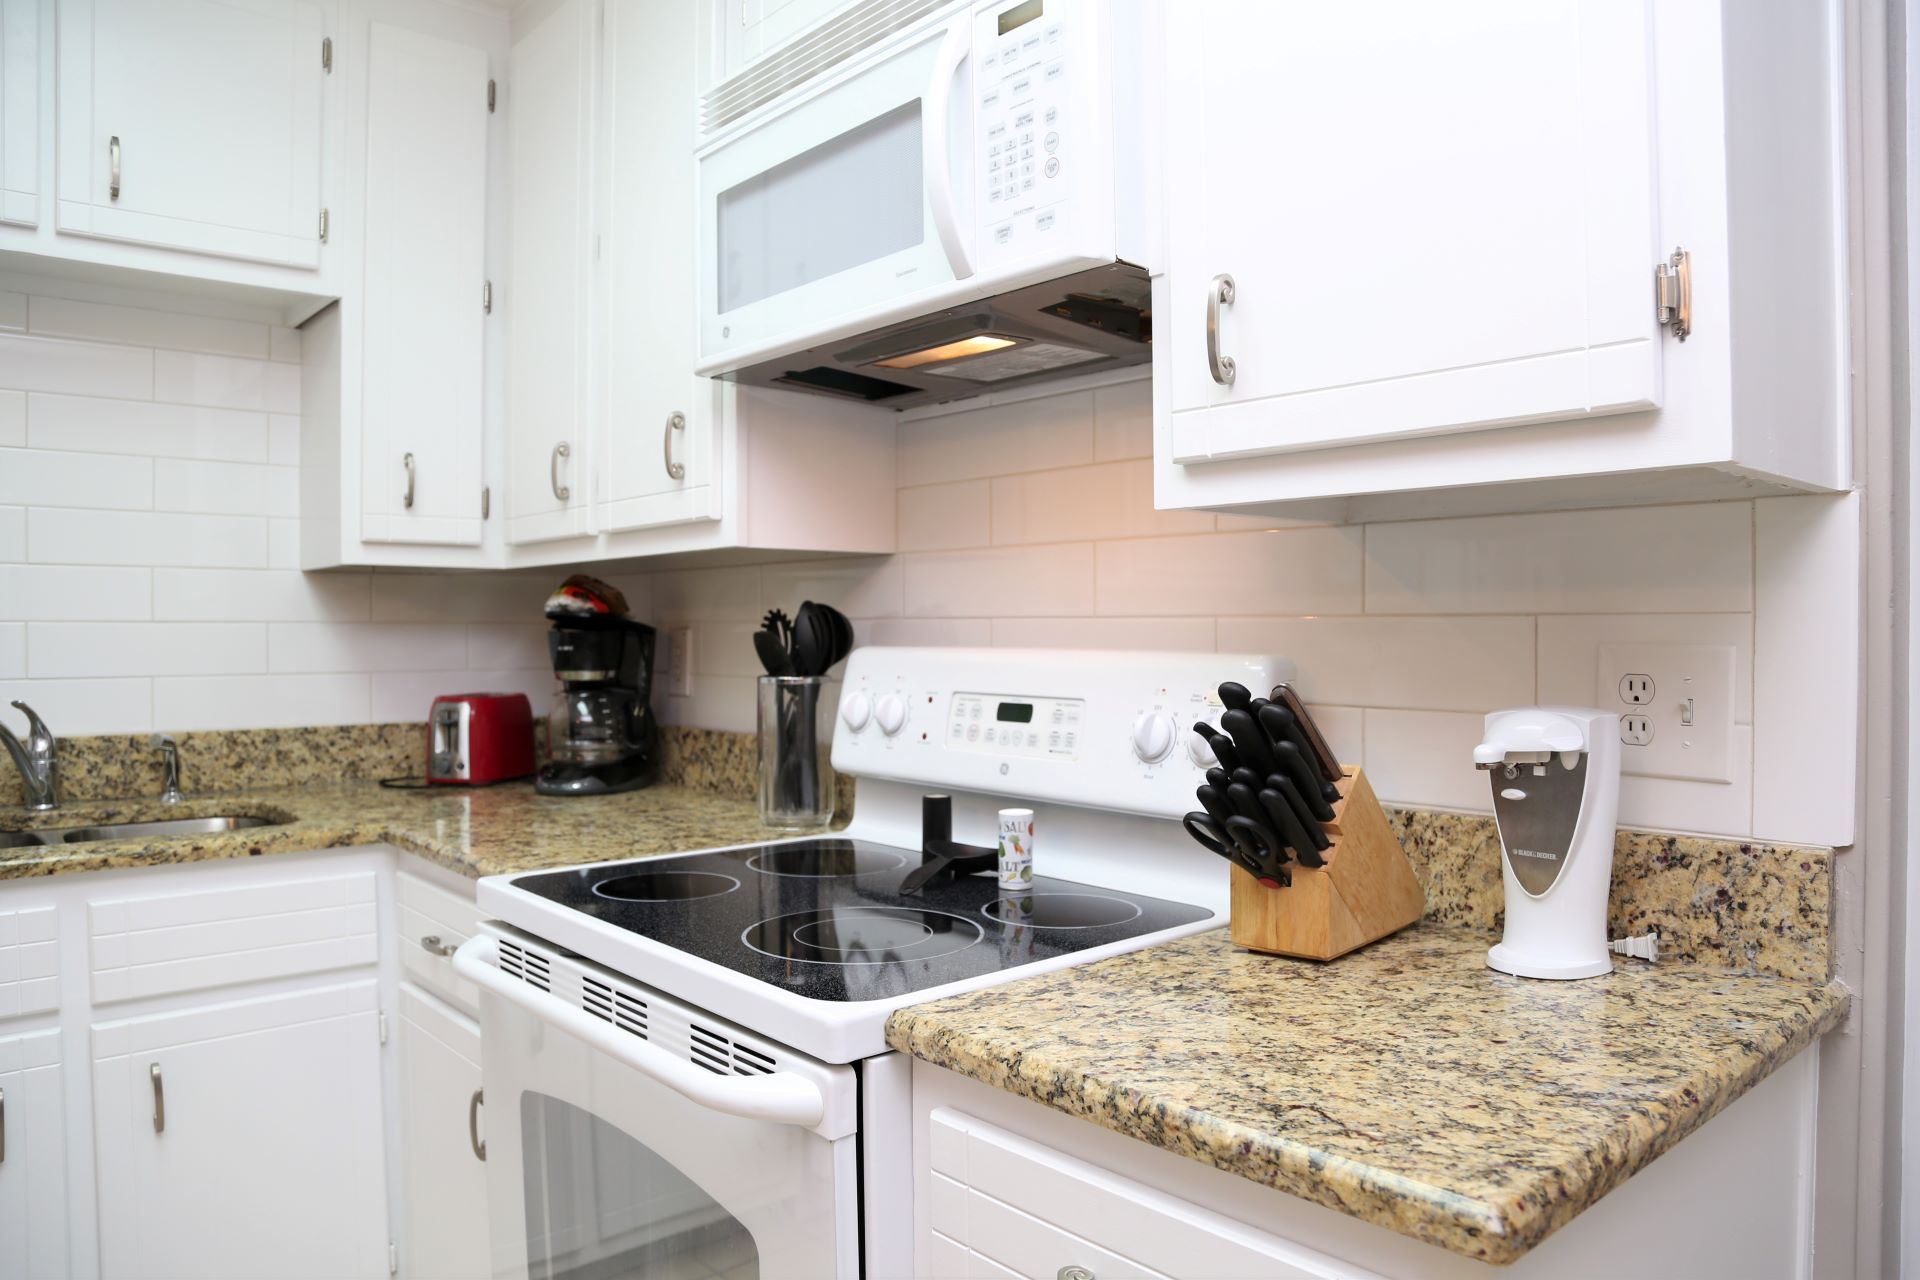 Fully equipped kitchen with granite counters and lots of cab